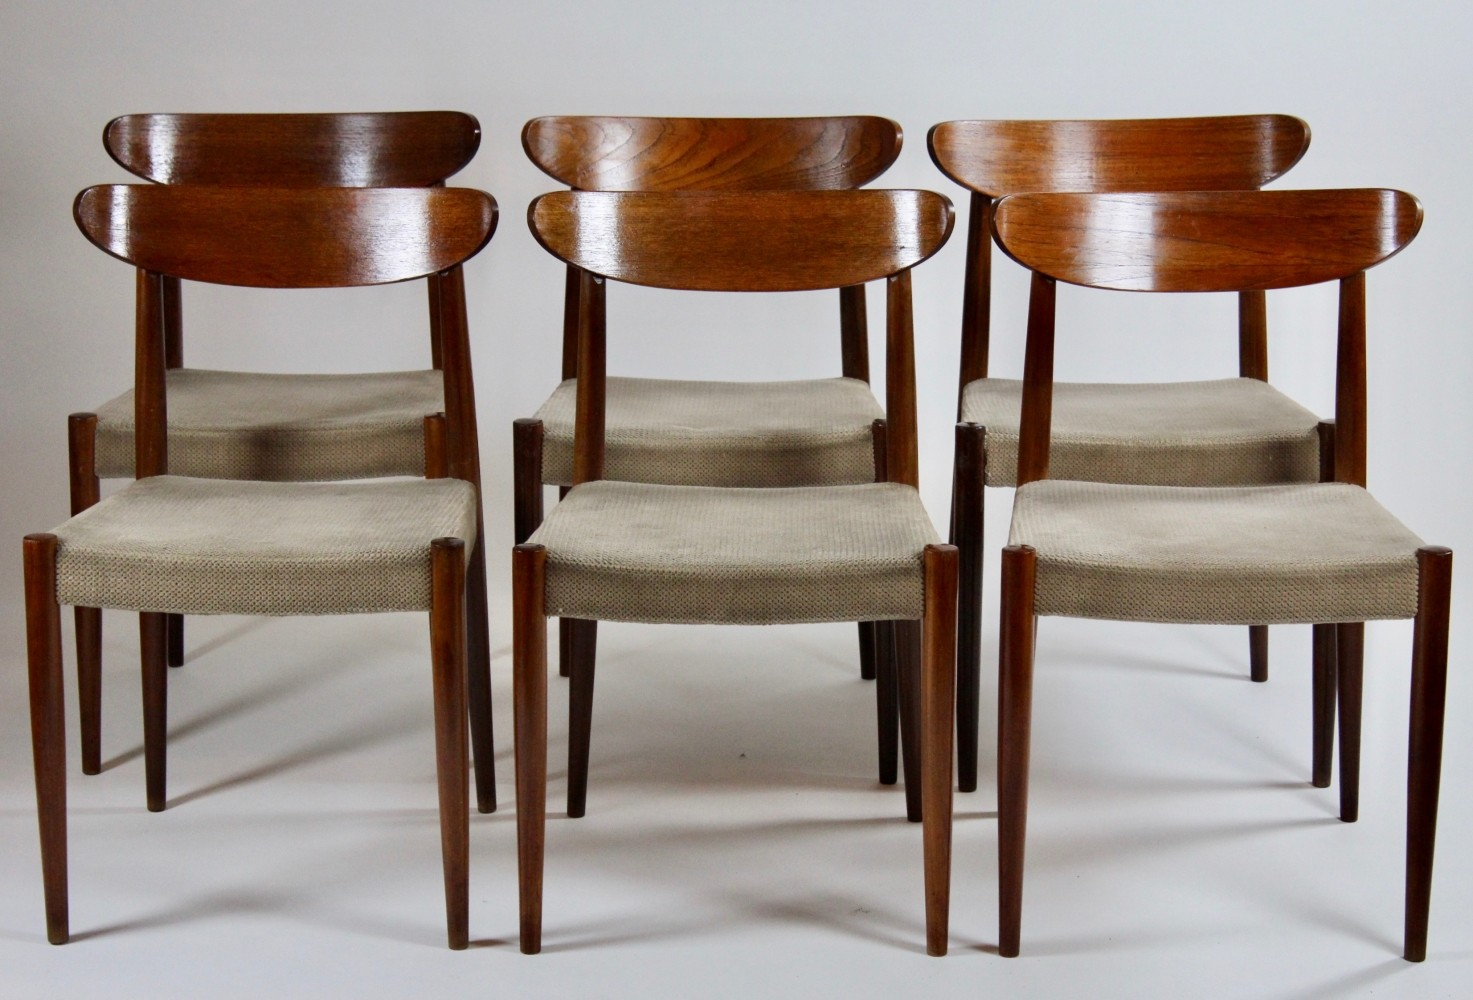 Set of 6 Paola dining chairs by Oswald Vermaercke for V Form, 1950s